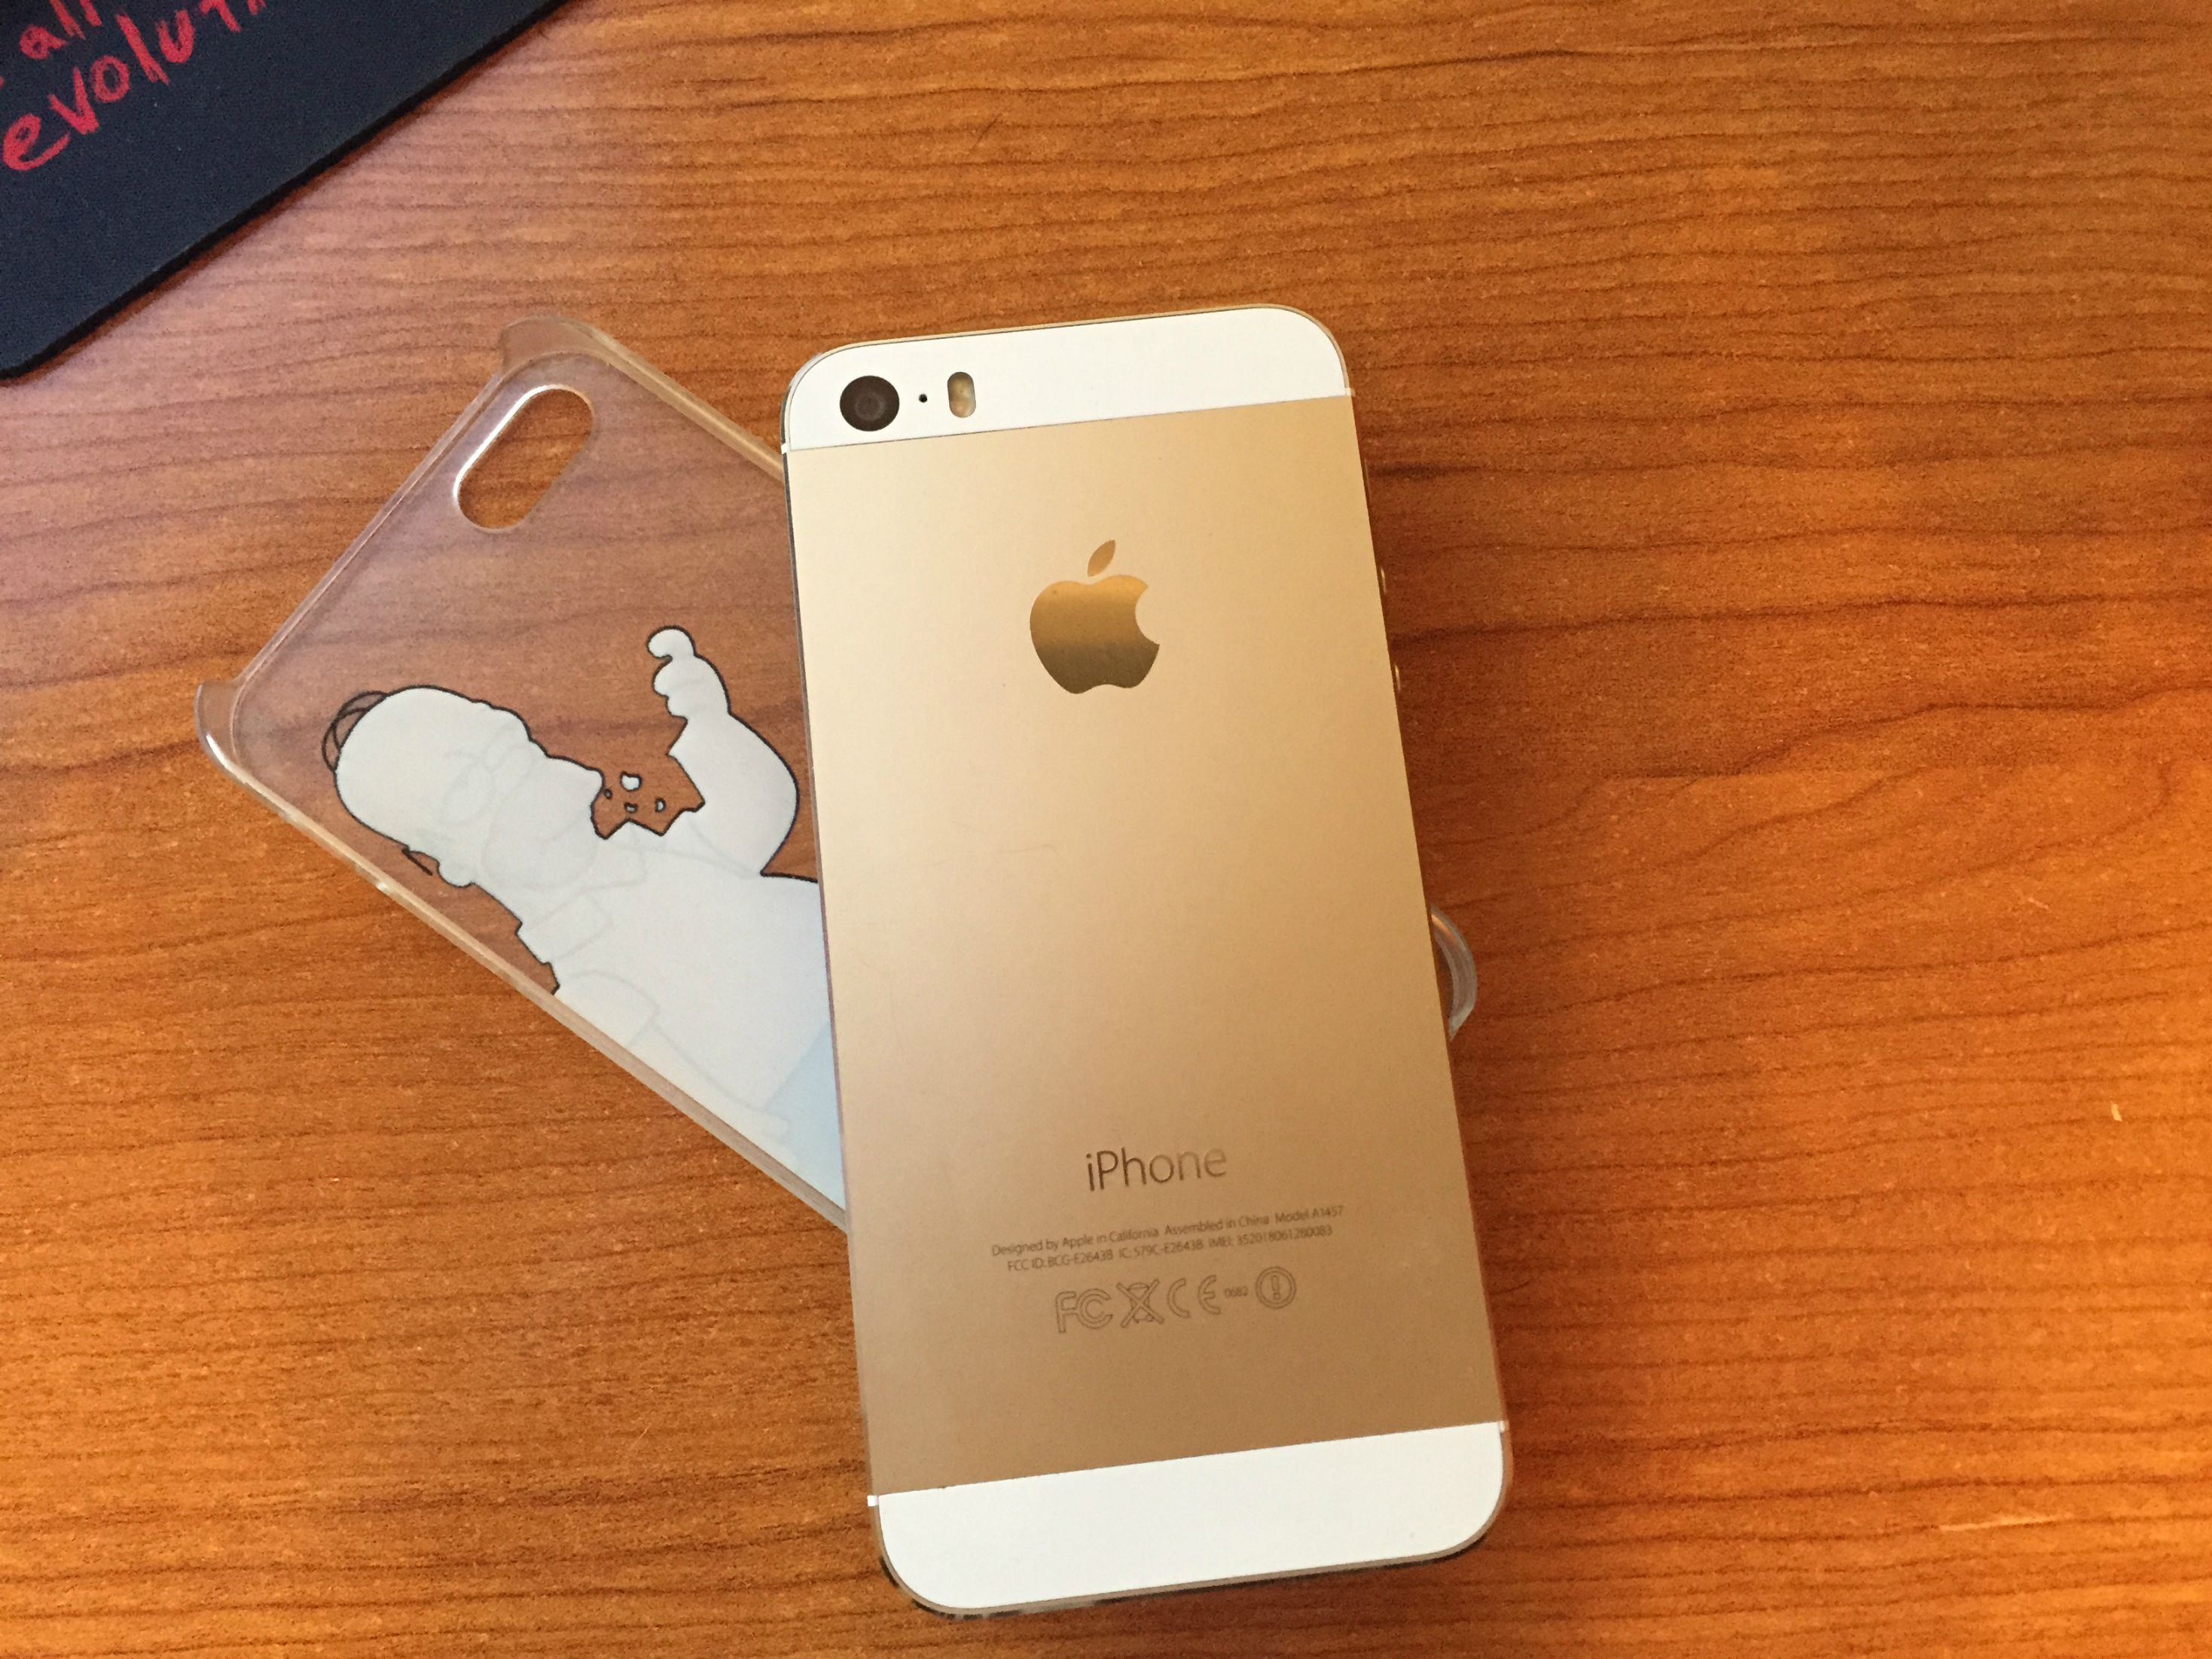 Iphone 3 Precio Libre Vendo Iphone 5s Gold 16gb Libre Barato